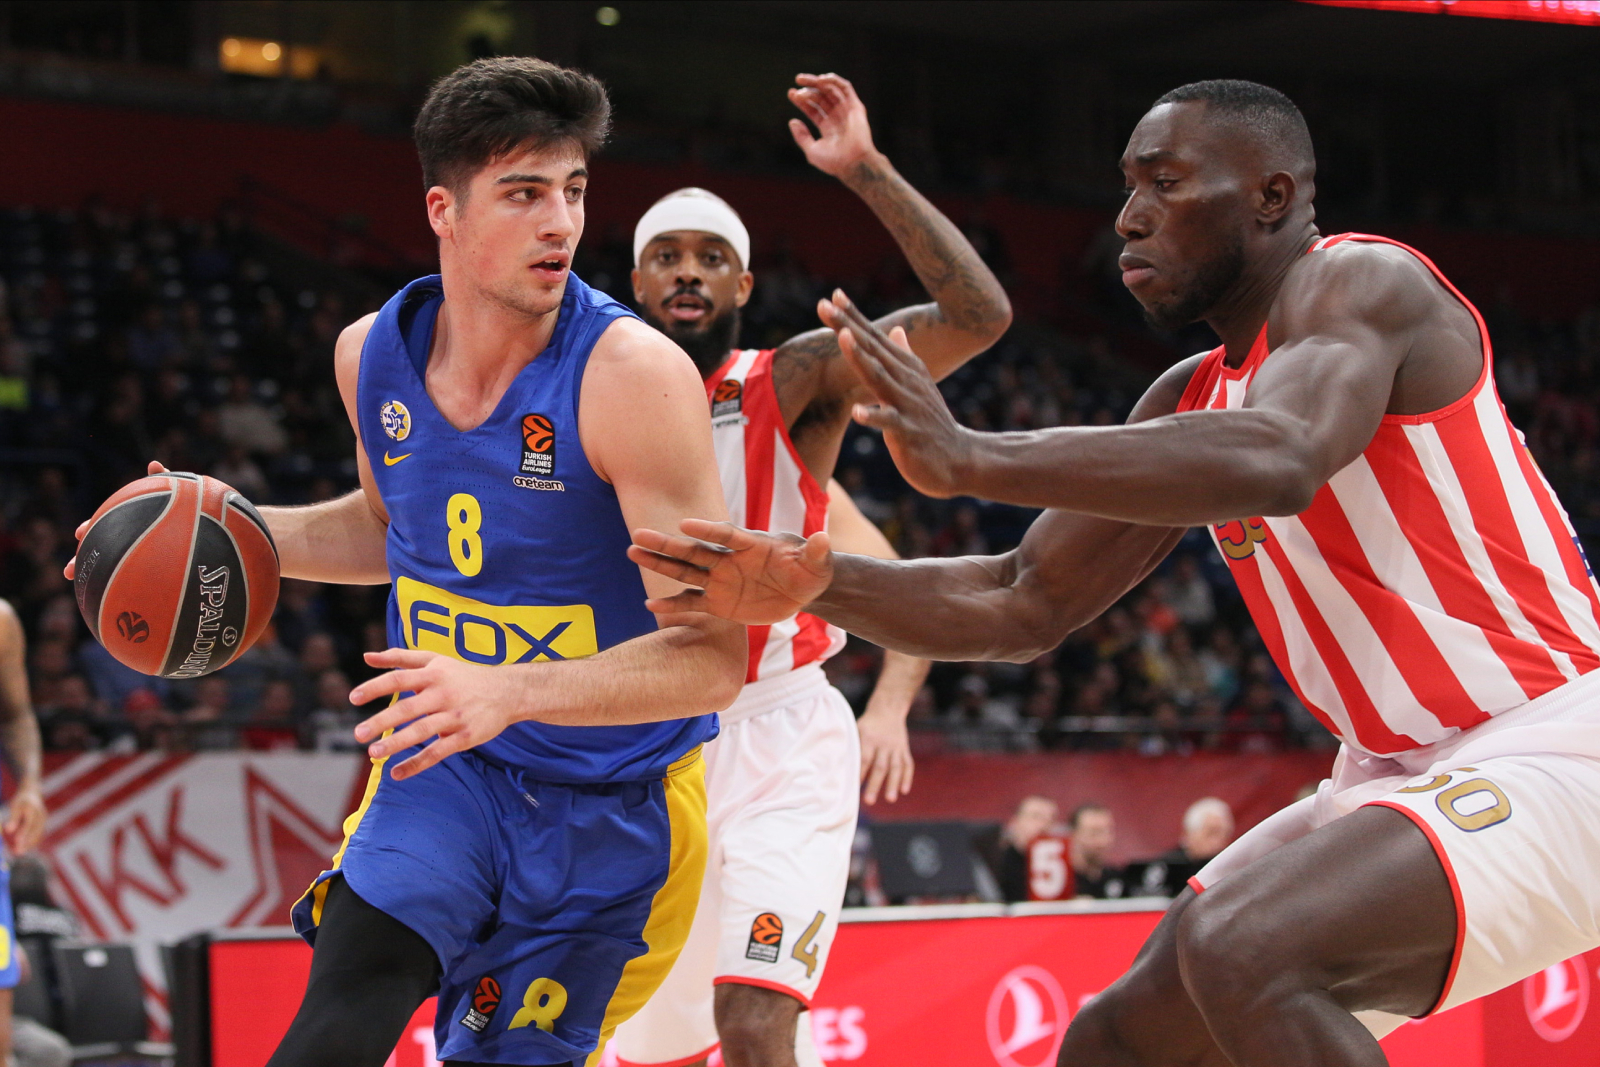 Deni Avdija is a name maybe not many people know ahead of the 2020 NBA draft. So, who is he and how good has he been in his career?